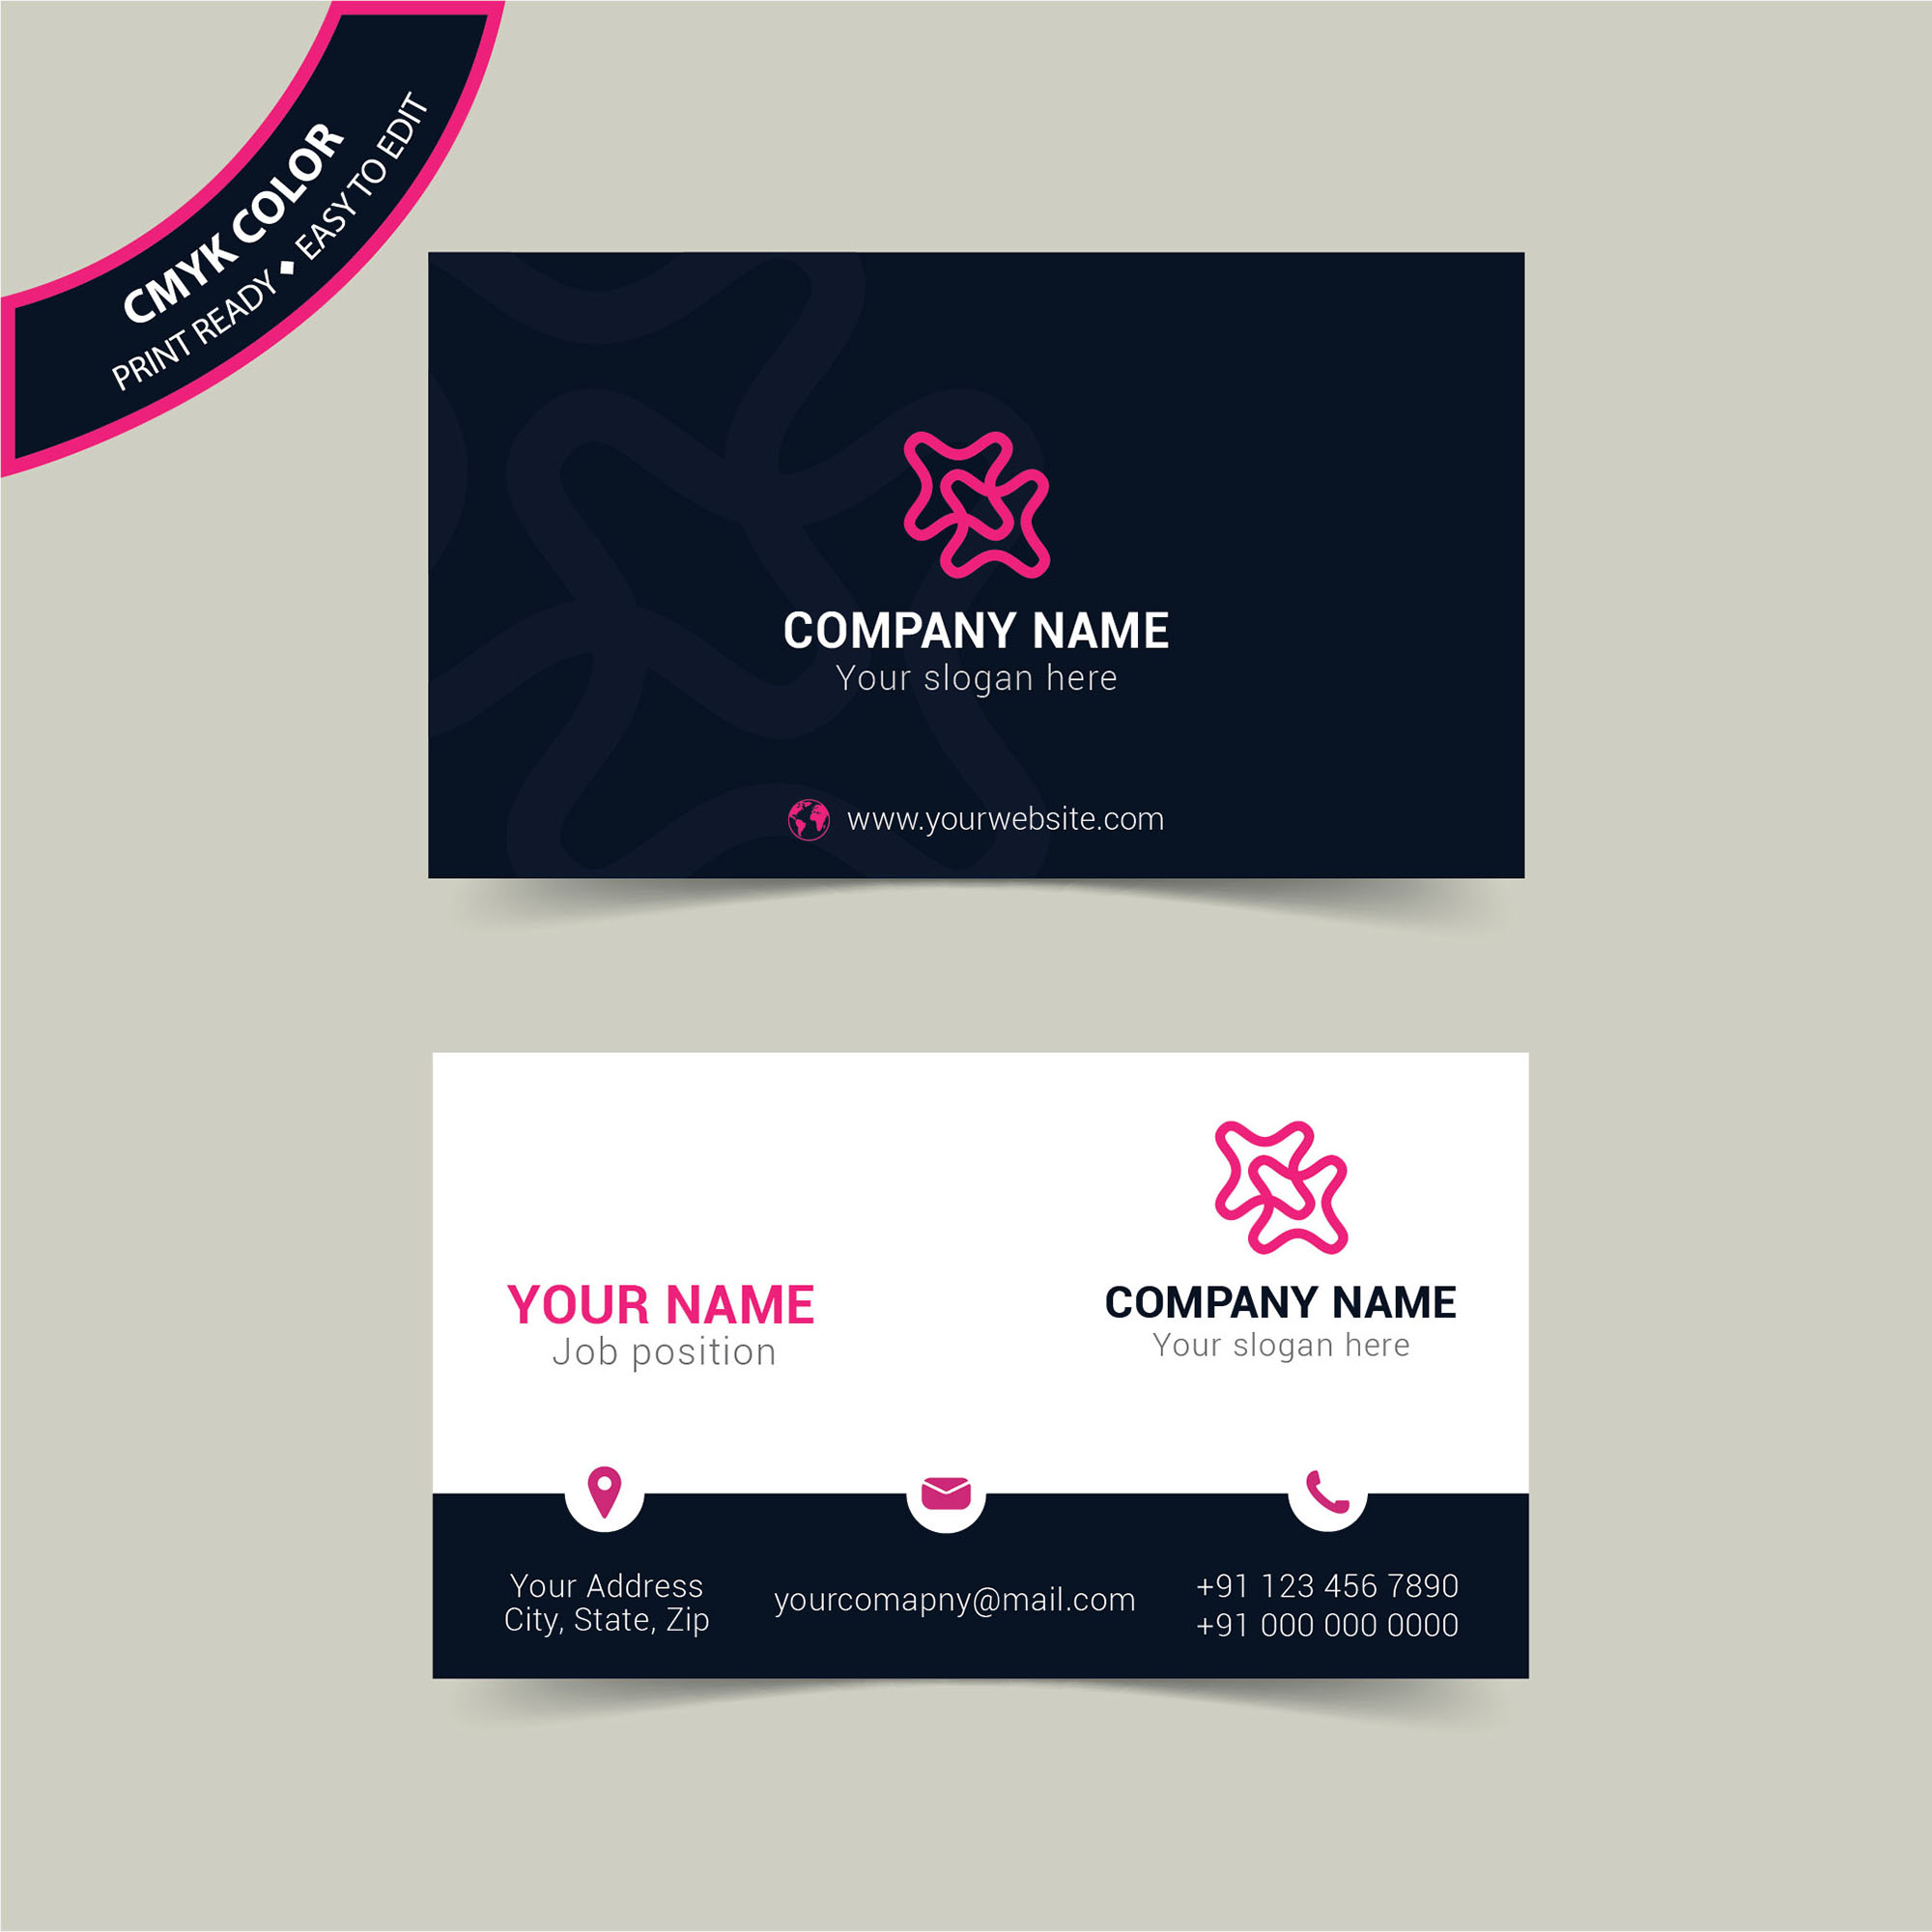 Modern simple business card template free download wisxi business card business cards business card design business card template design templates cheaphphosting Image collections